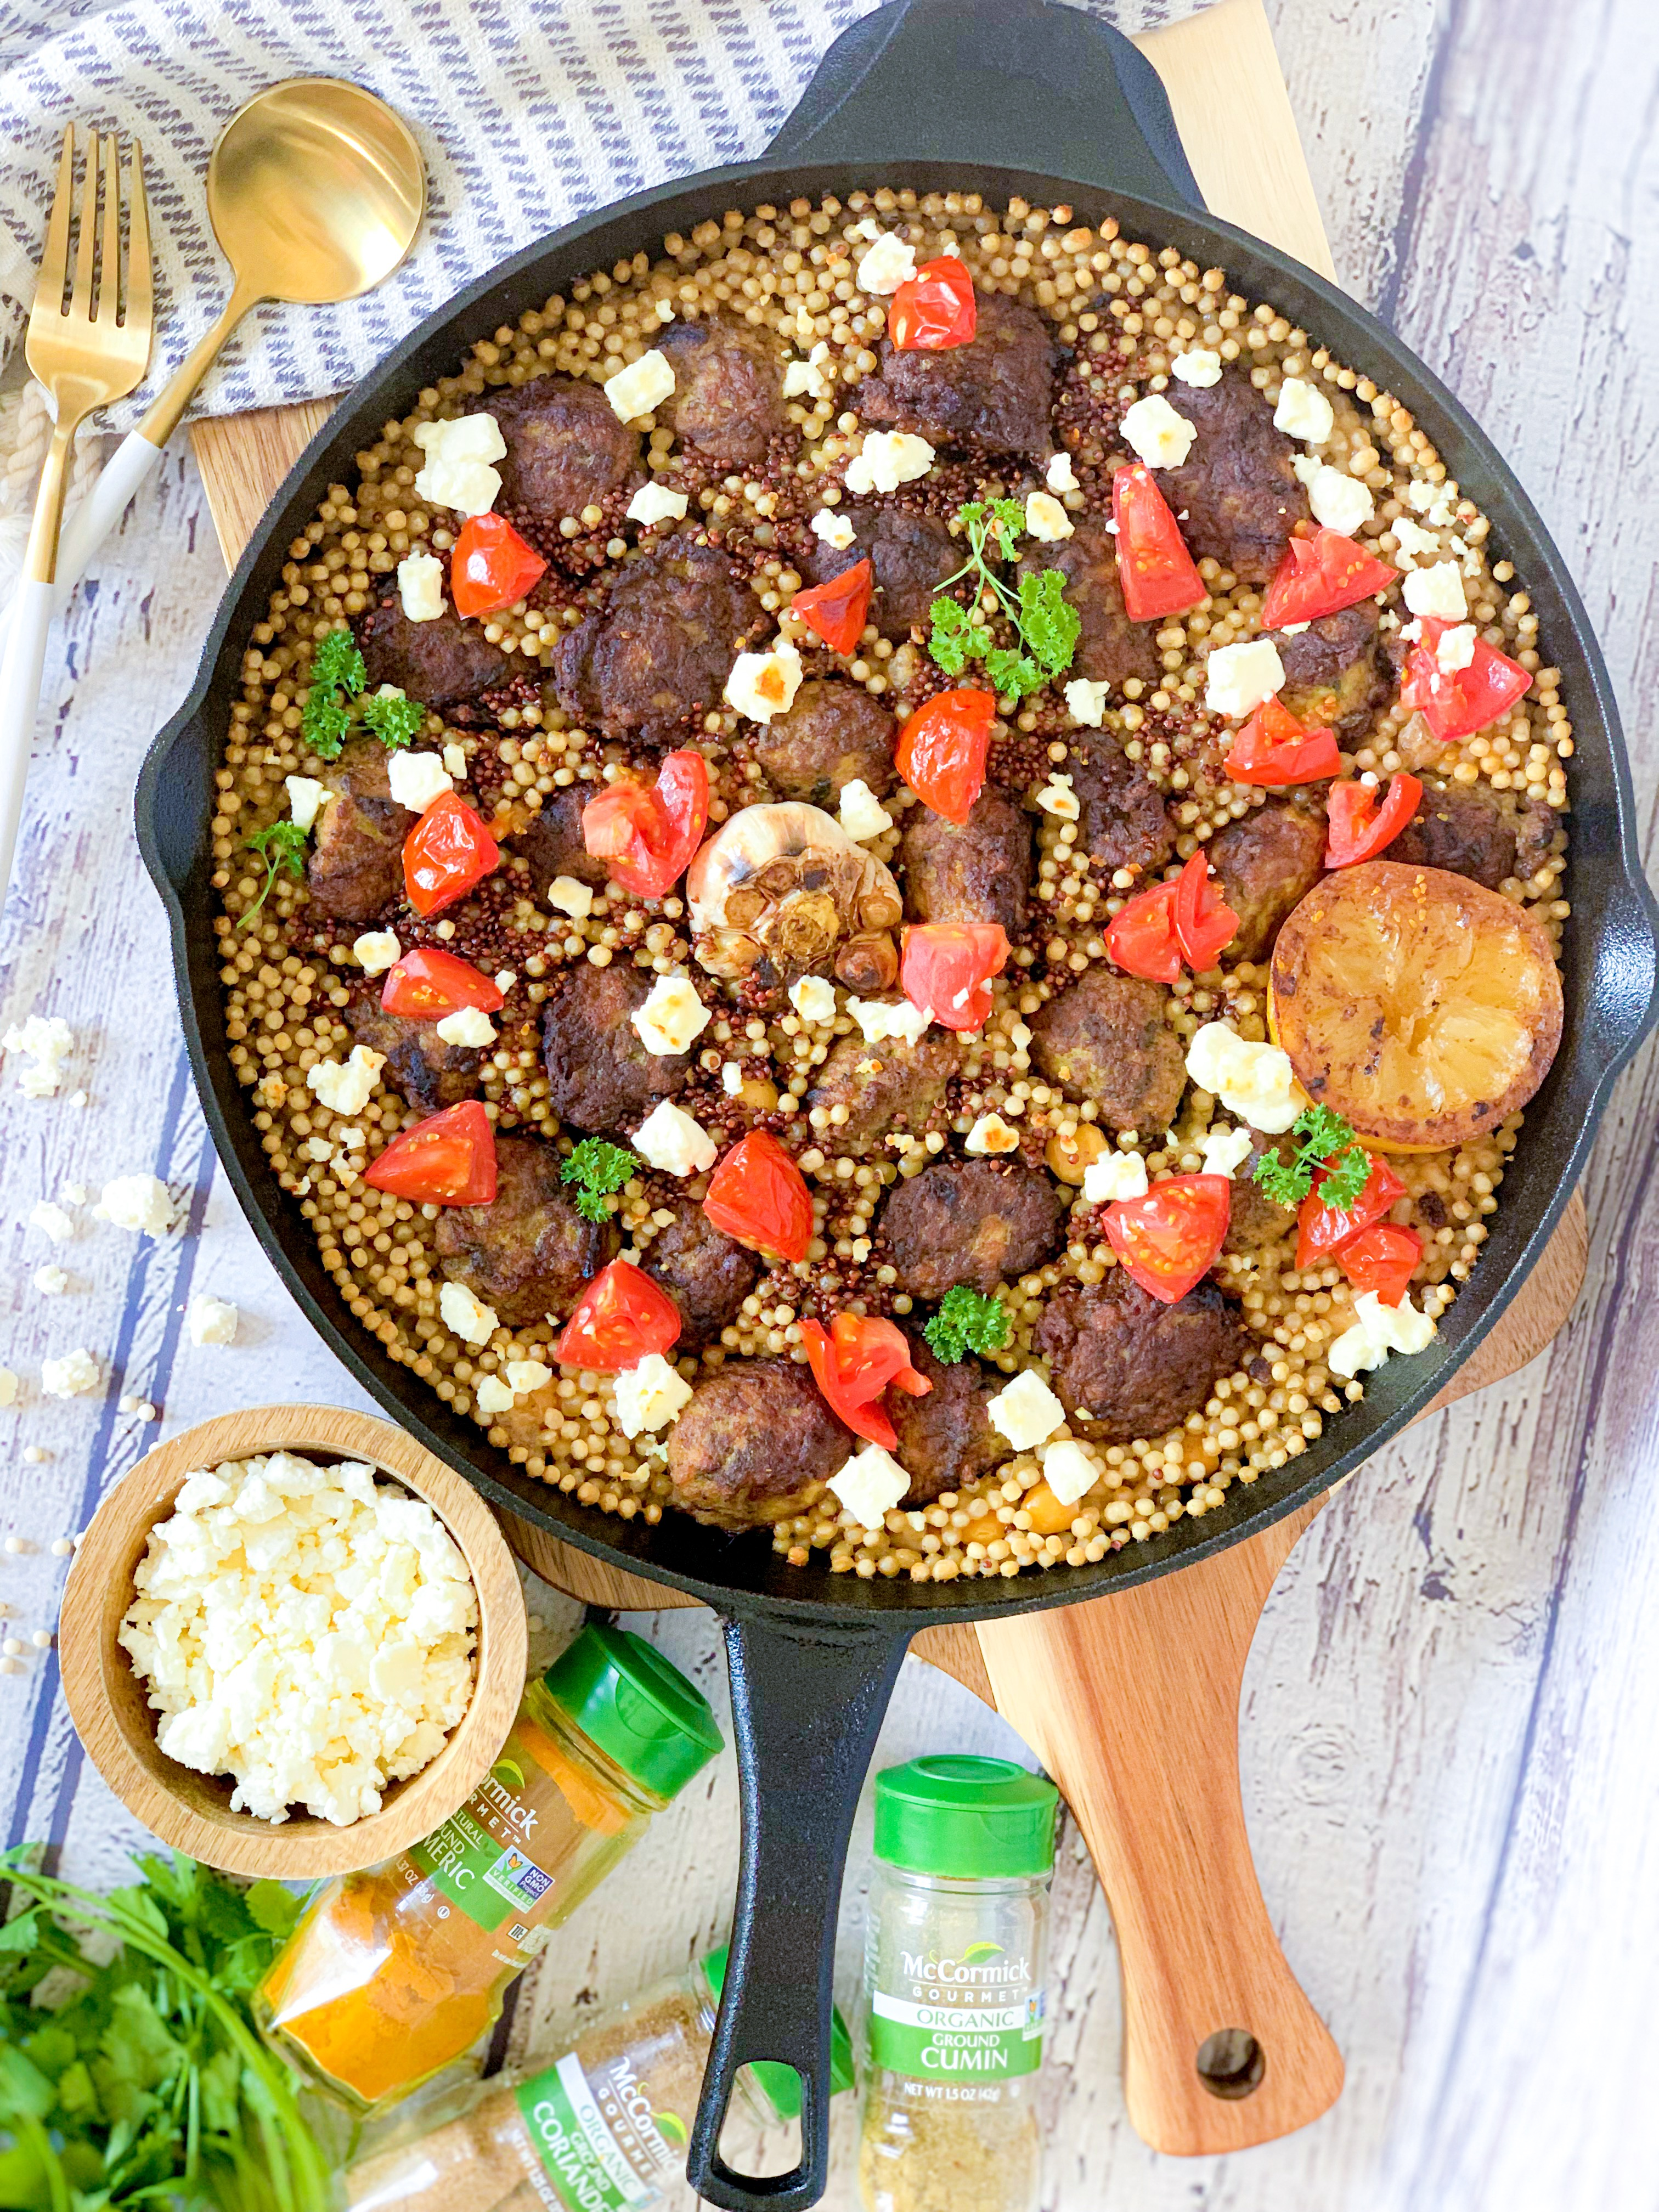 Greek Couscous and Meatballs